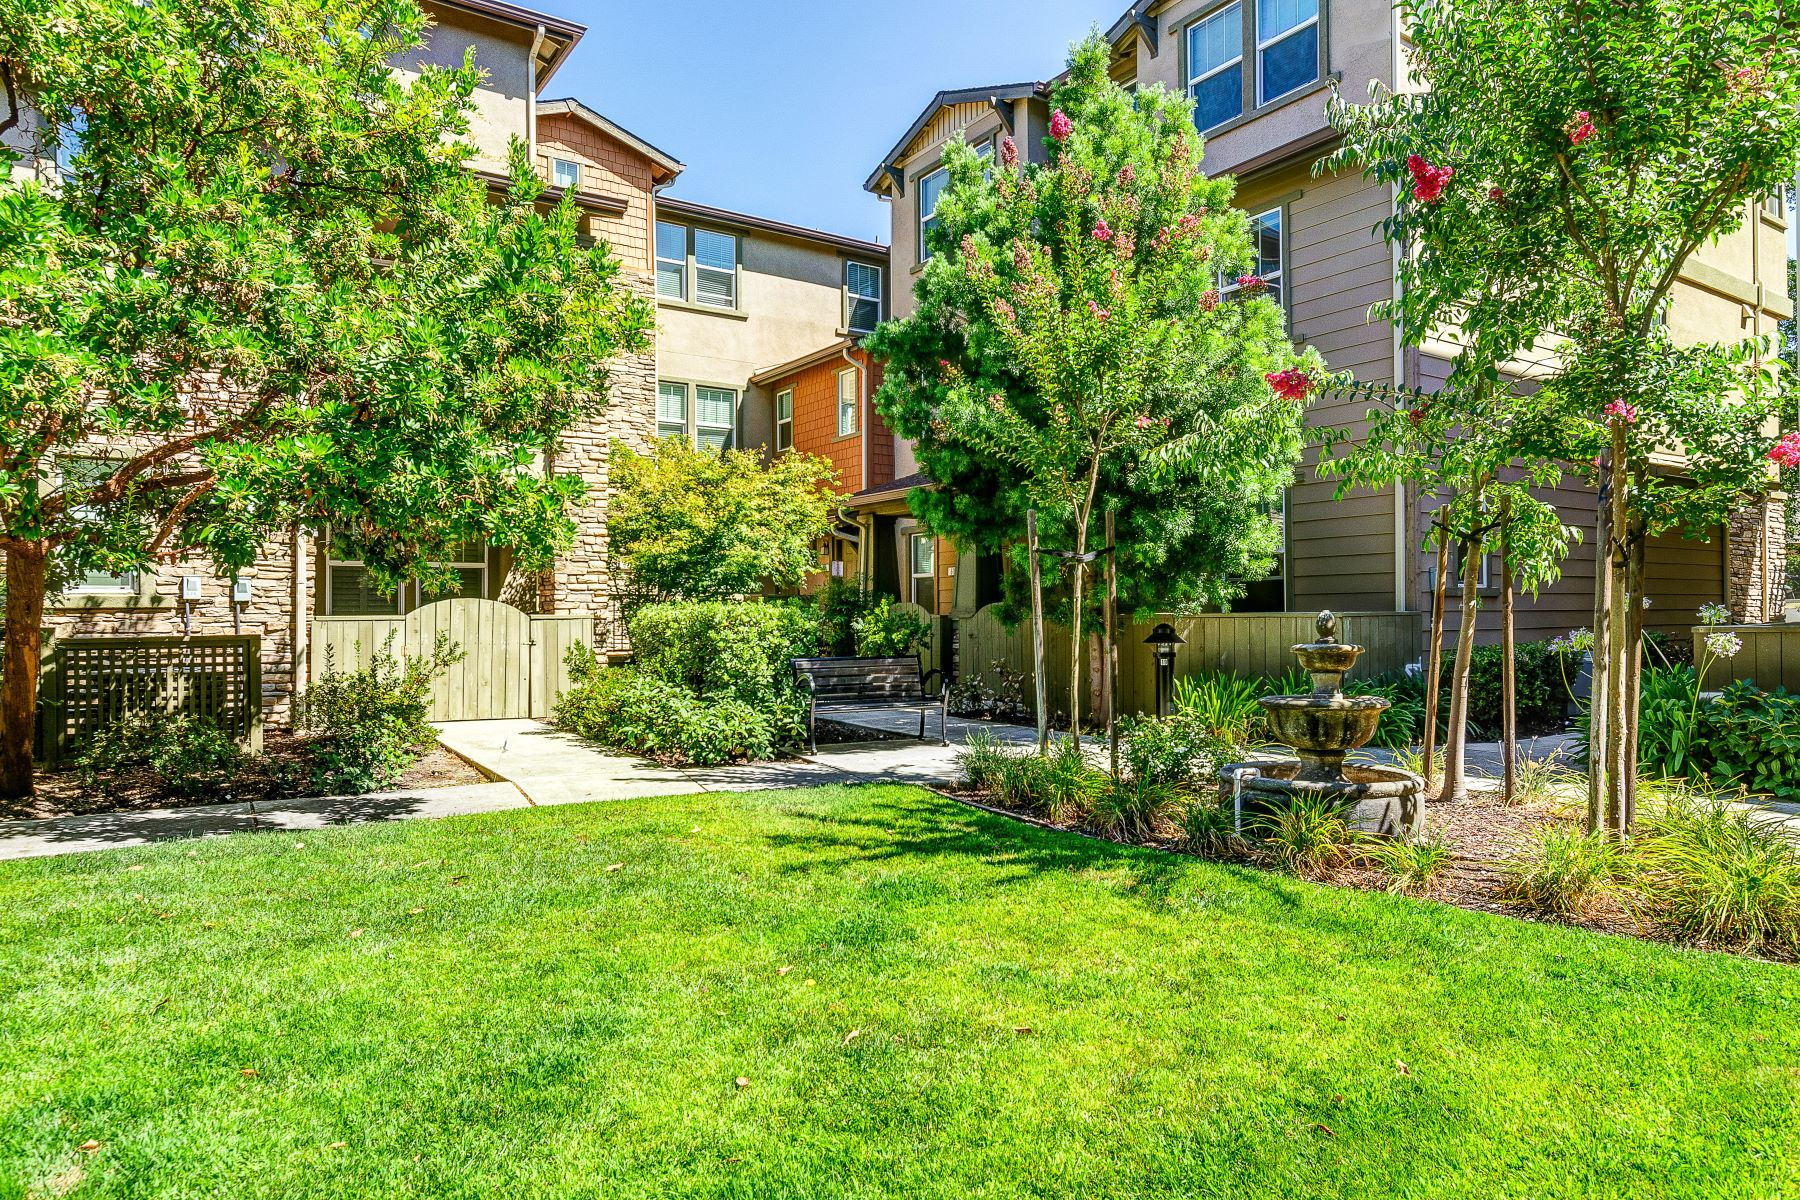 townhouses for Active at 618 El Paseo Circle, Walnut Creek, CA 94597 618 El Paseo Circle Walnut Creek, California 94597 United States